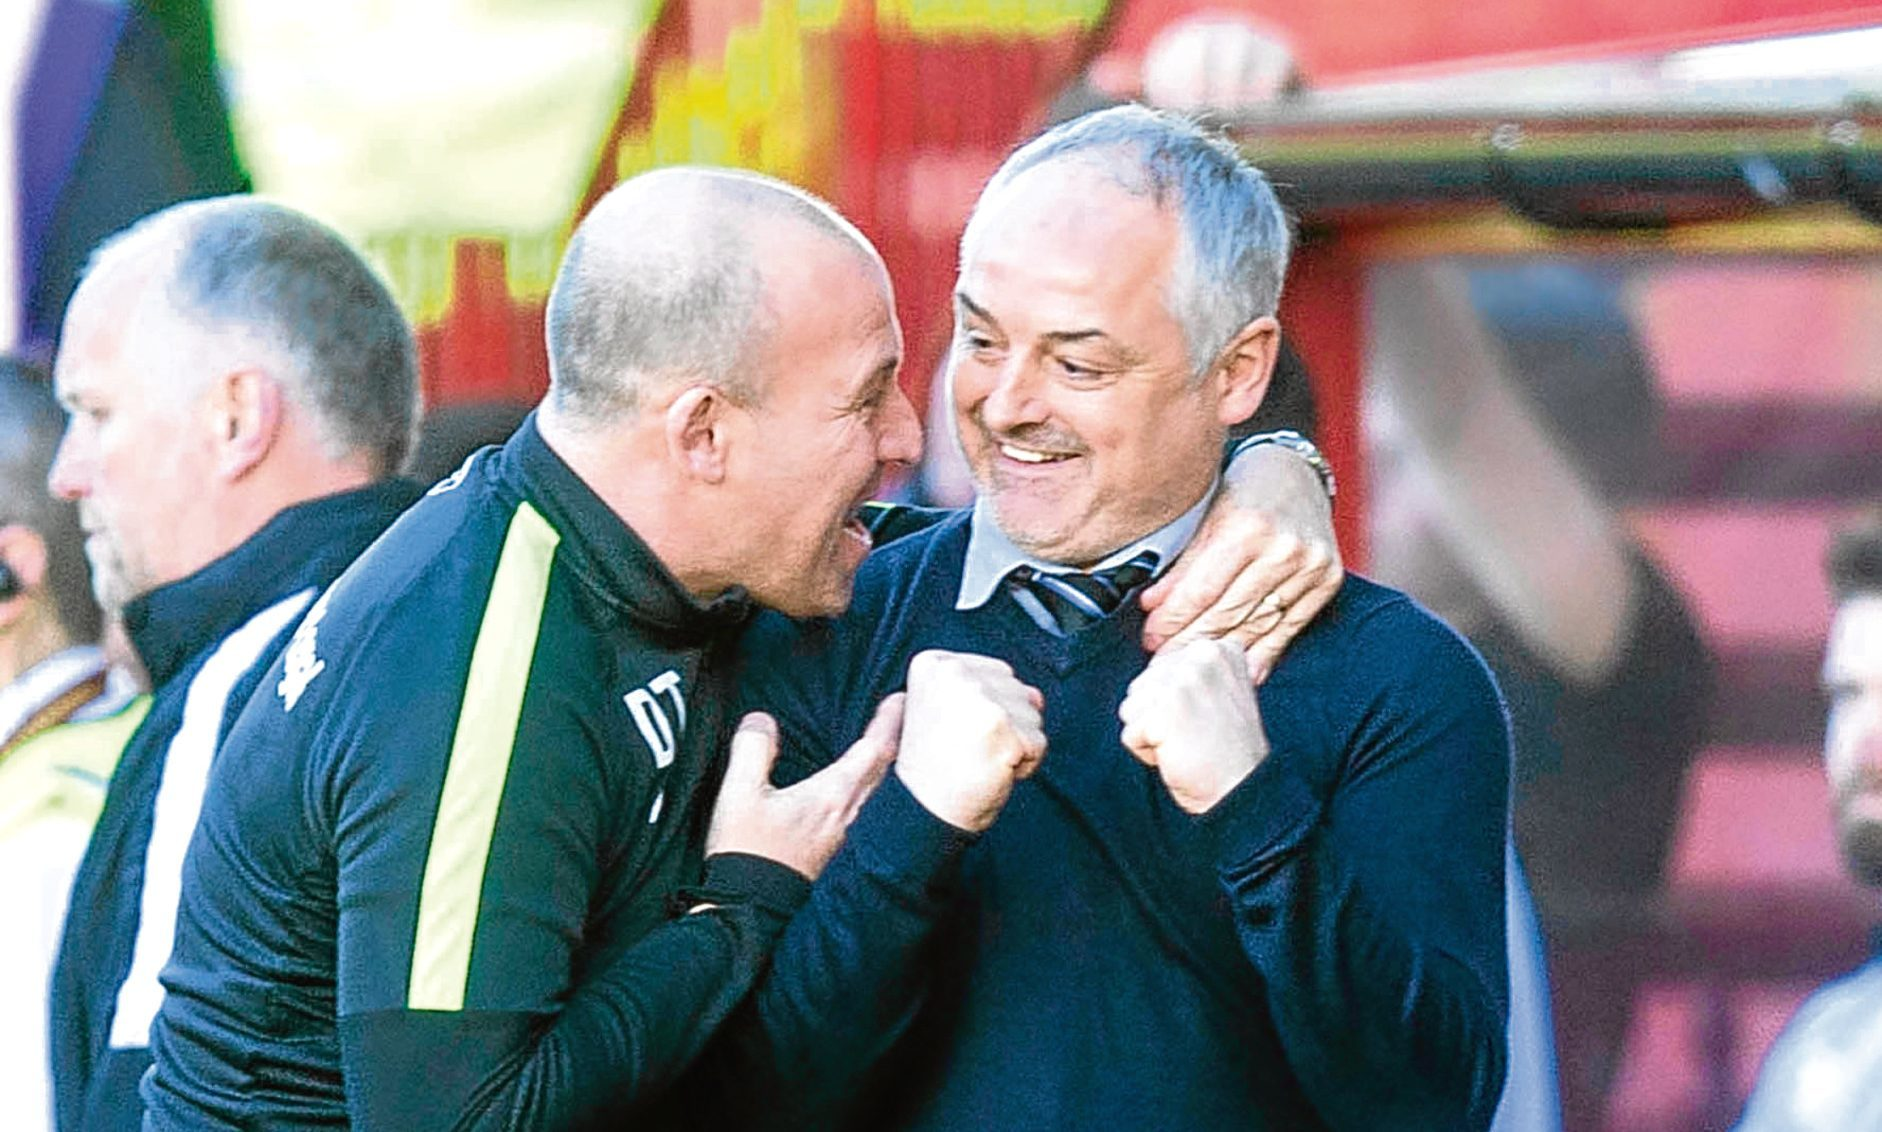 Dundee United manager Ray McKinnon and Darren Taylor celebrate victory at the full-time whistle of the Irn Bru-Cup Final at Fir Park.